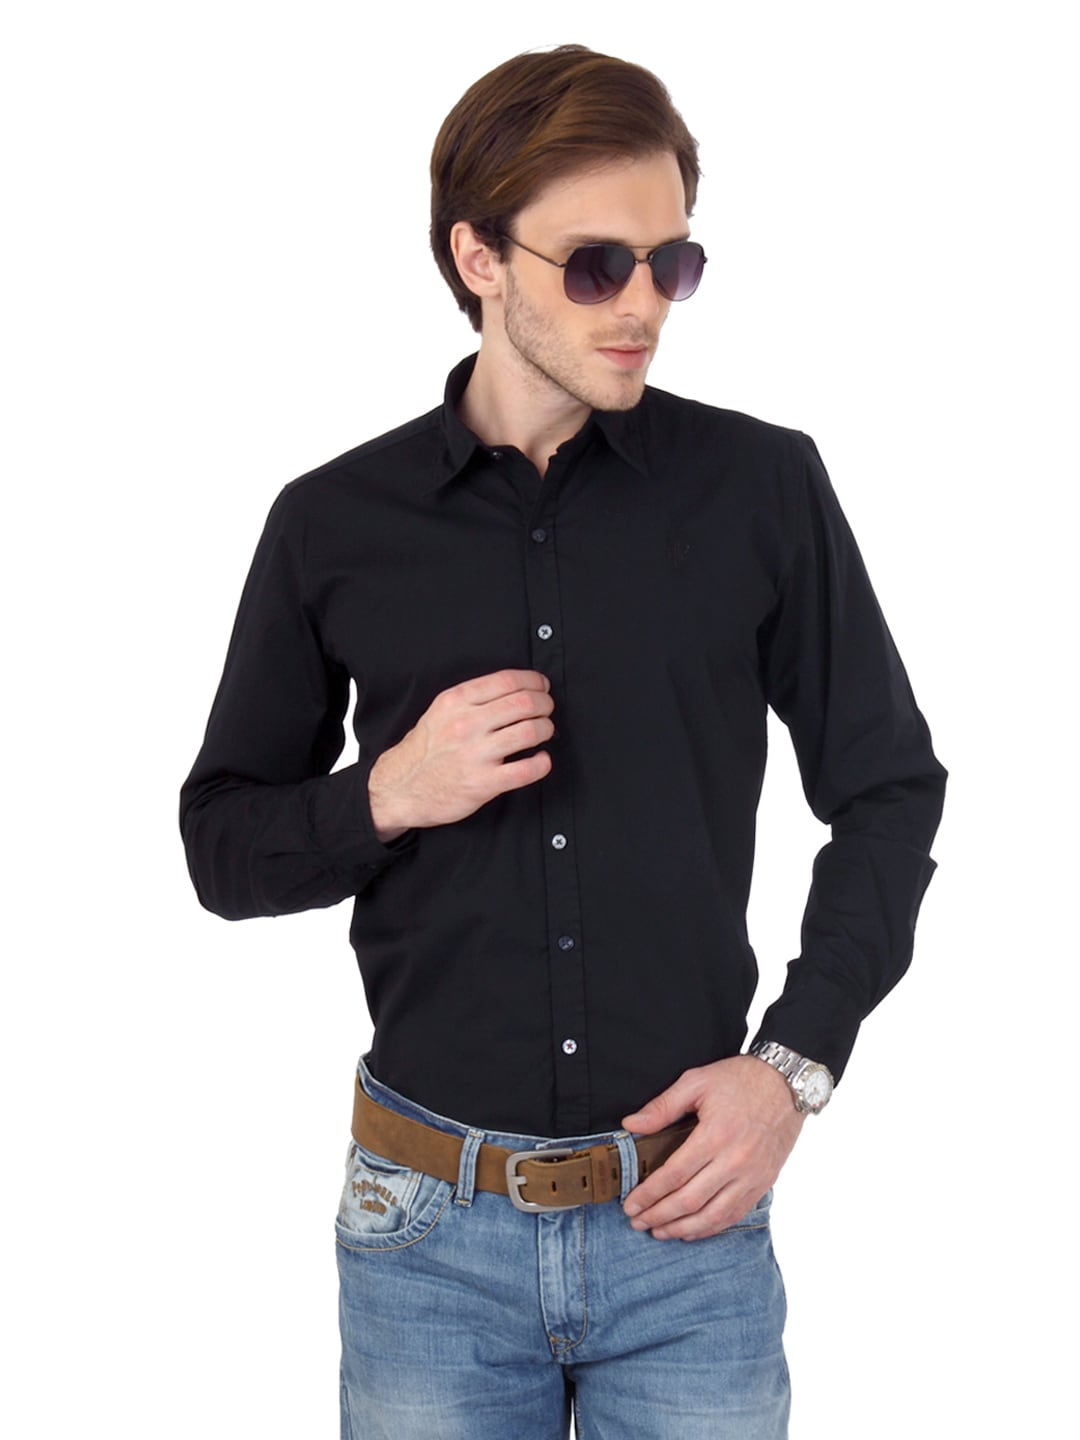 Buy pepe jeans men black shirt 320 apparel for men 69766 for Shirts that go with black jeans